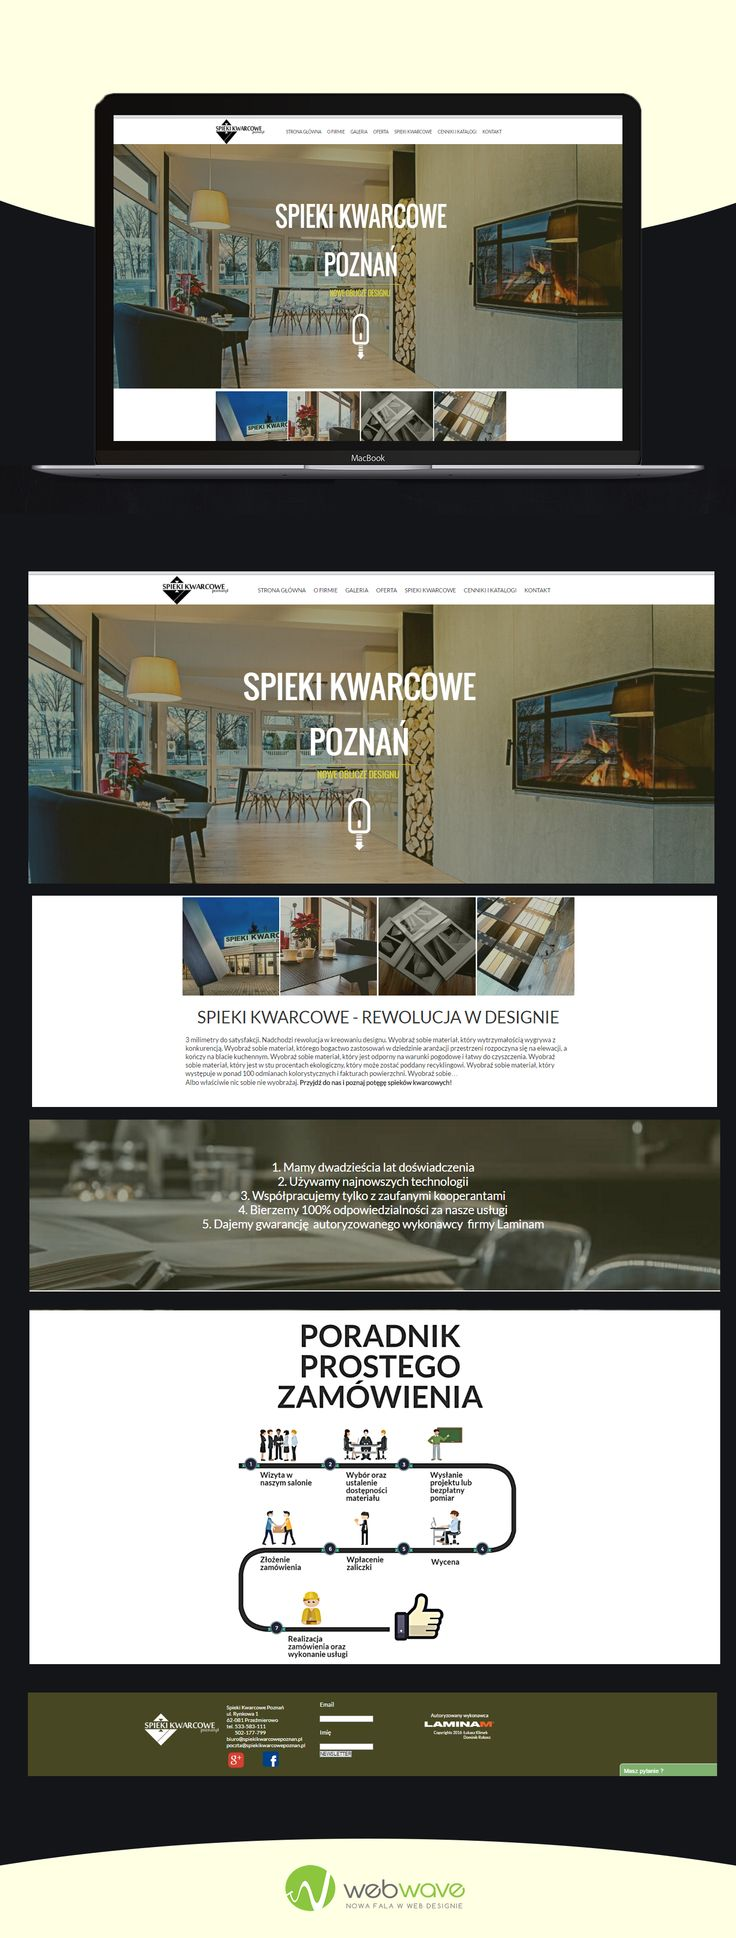 #webwave #inspiration #design #graphic #beautifull #smart #webside #webside #kreator #strony #internetowe #grafika #projekt